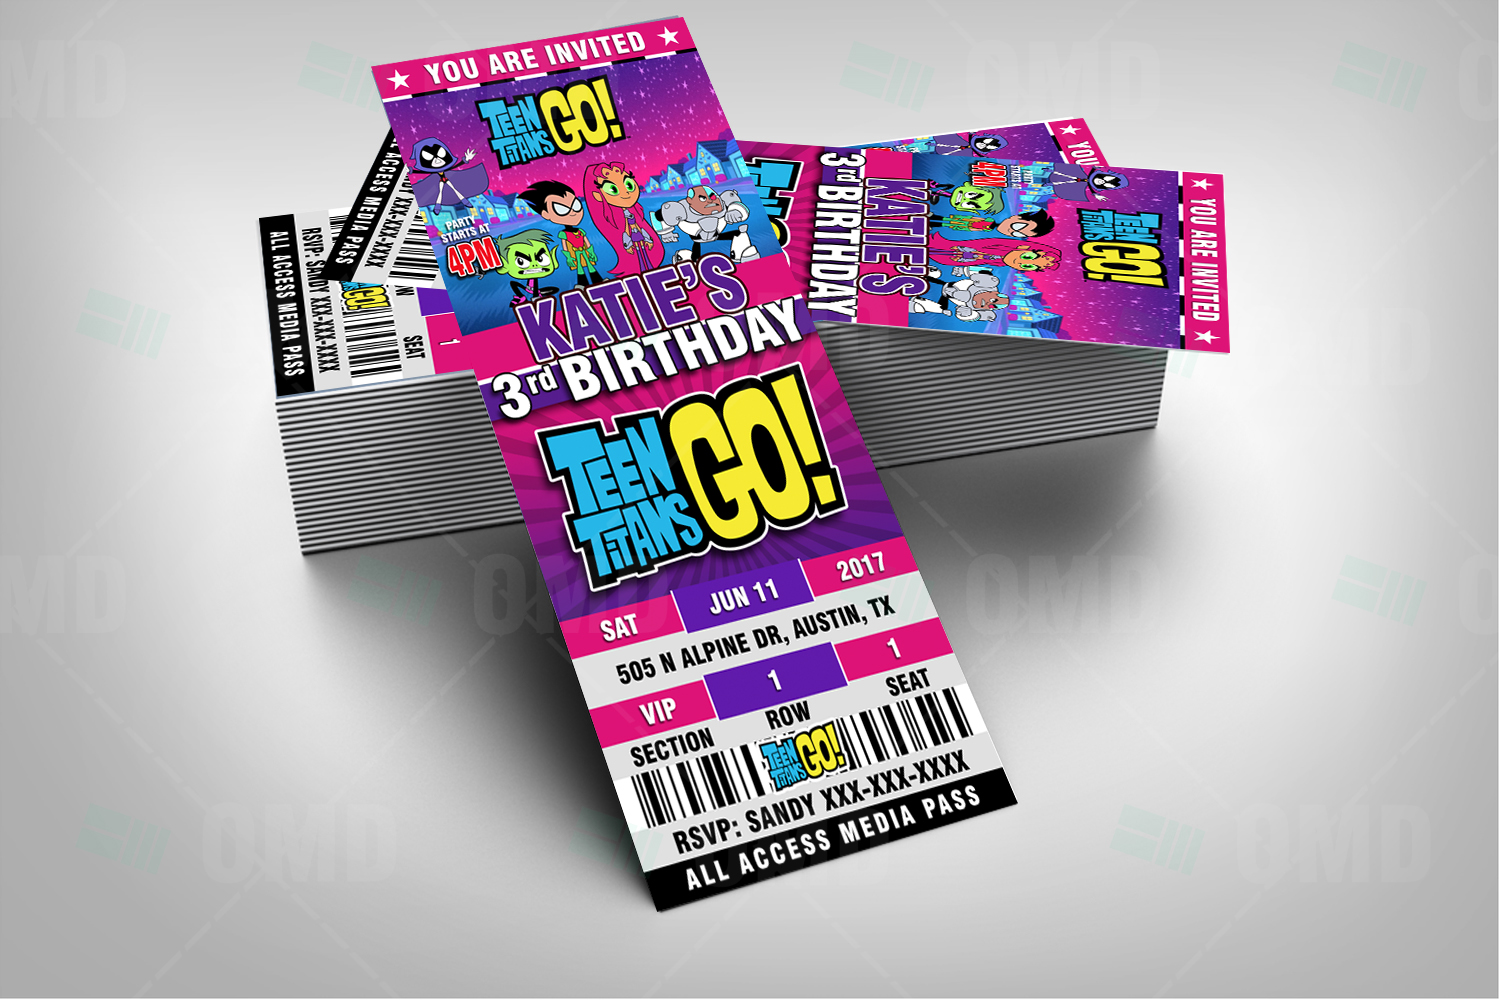 Teen Titans Go Ticket Style Birthday Cartoon Invites -9049